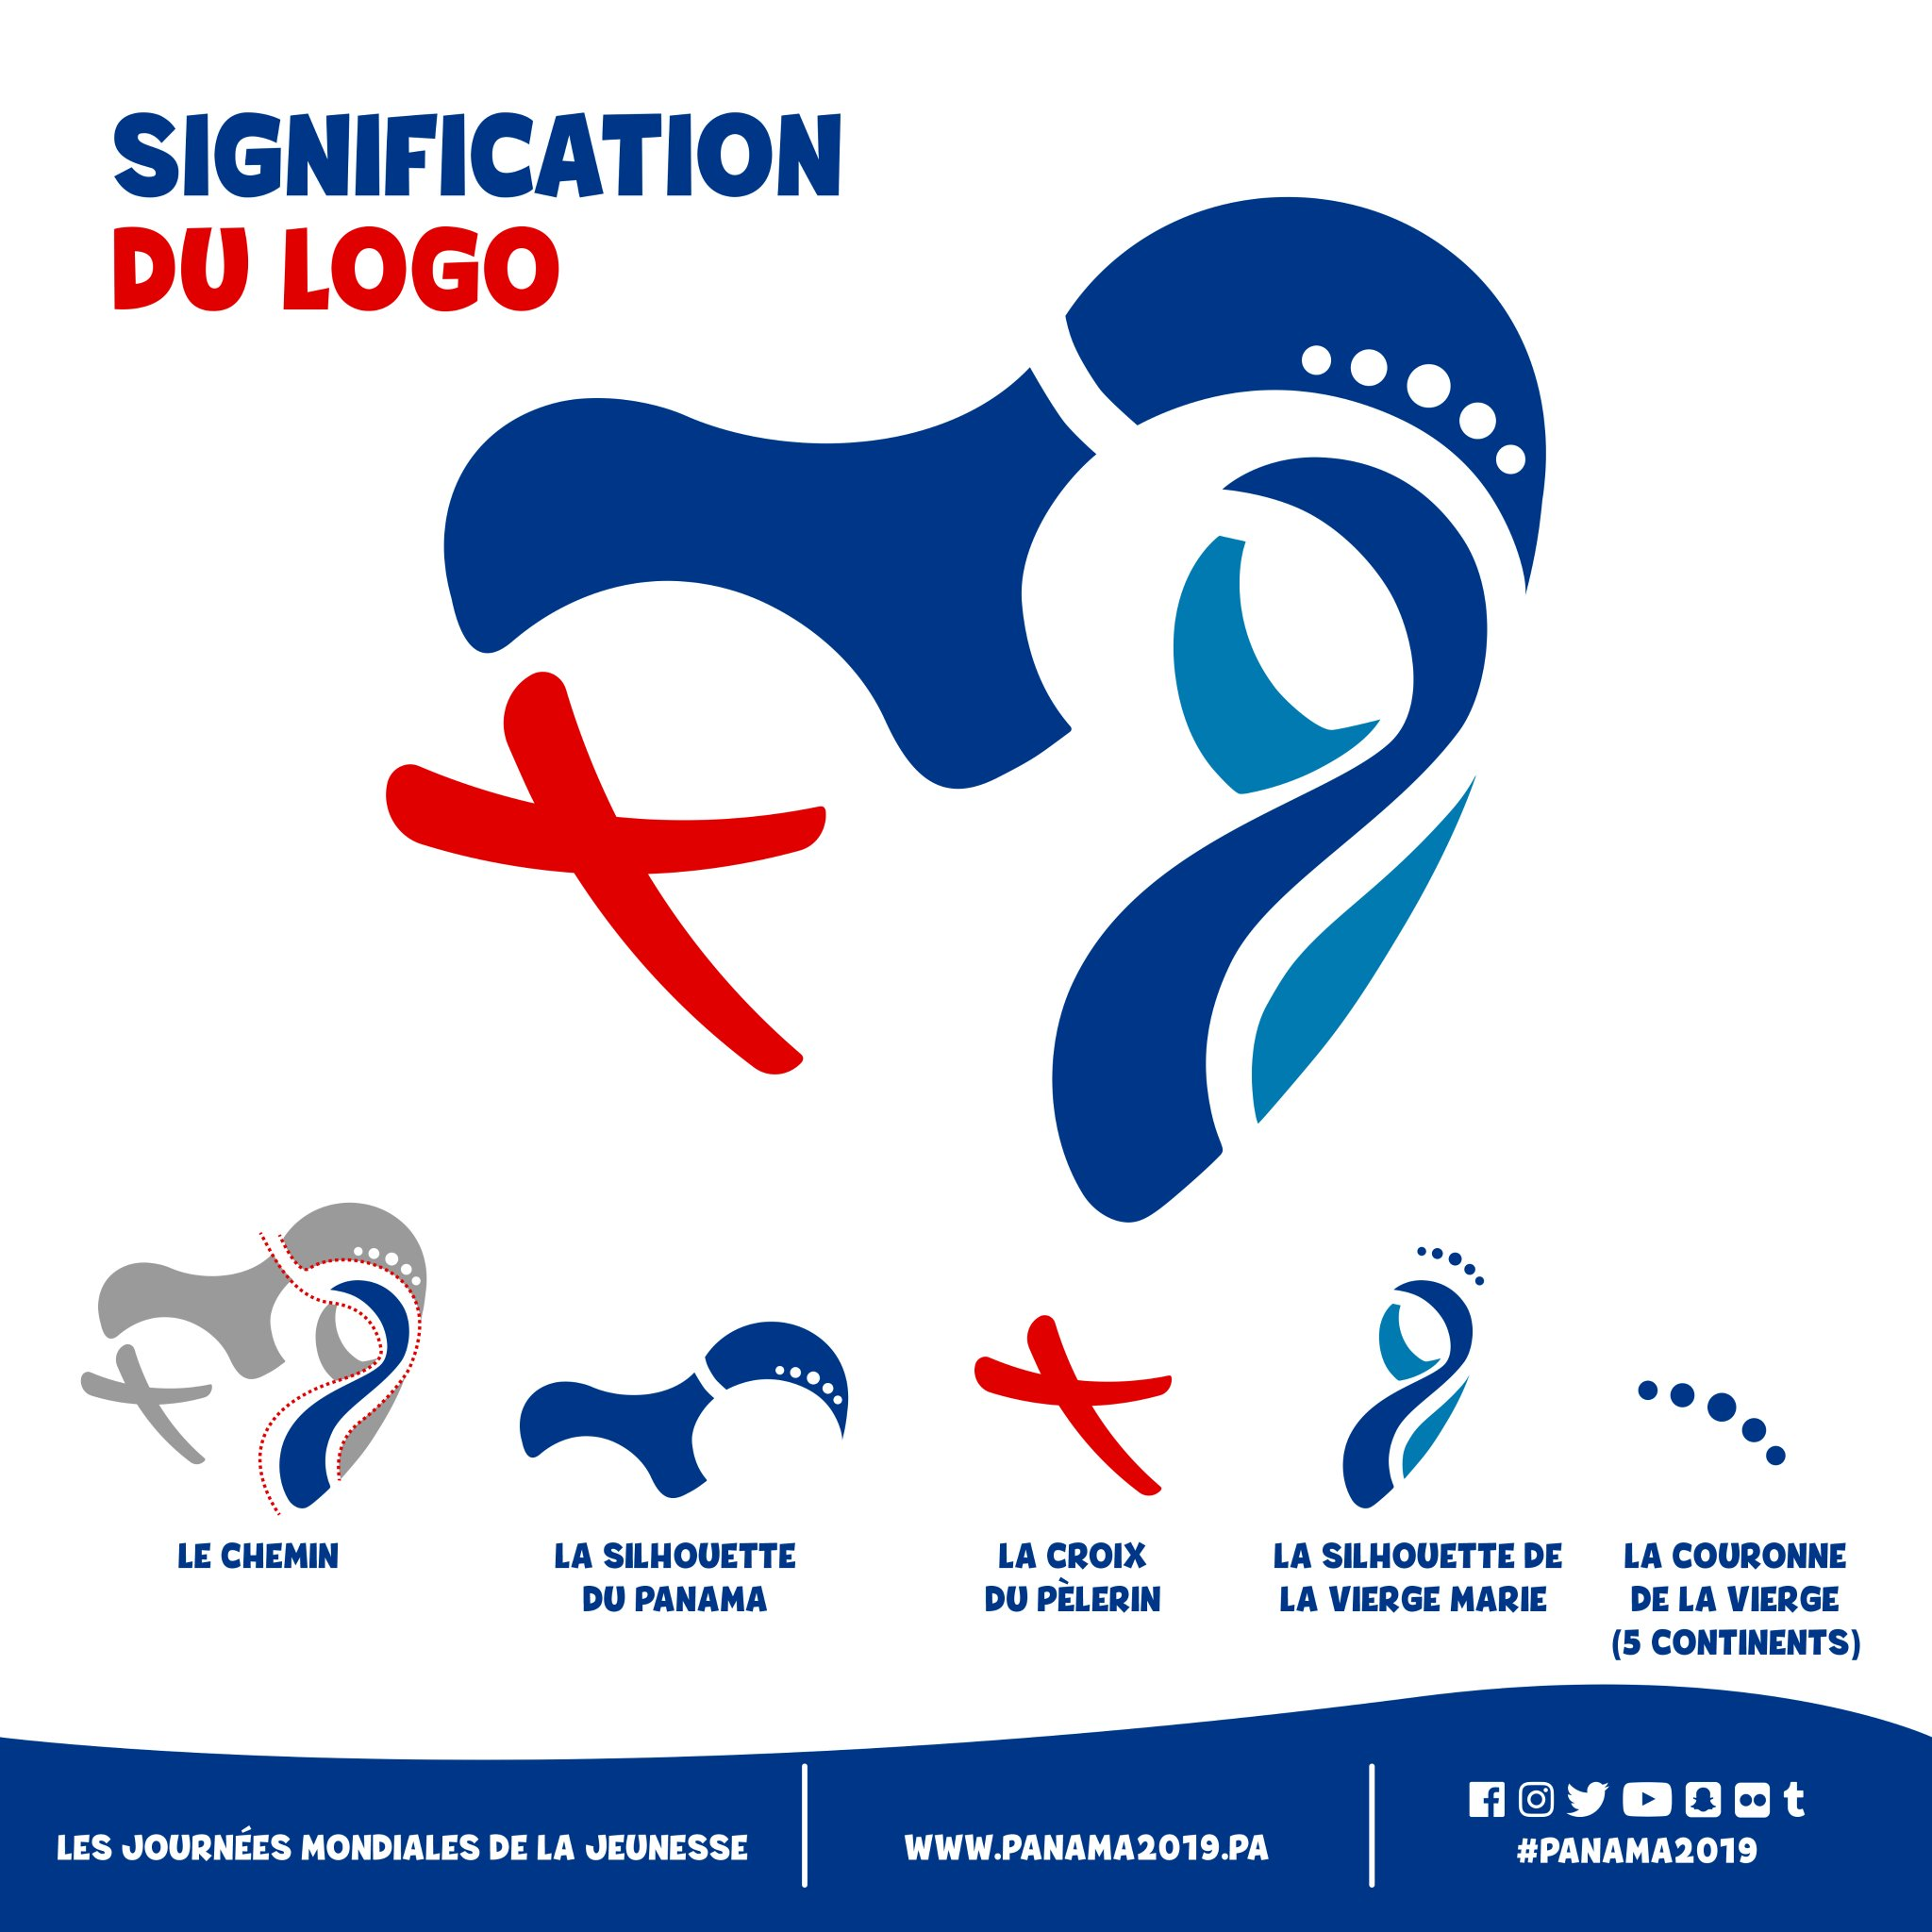 Panama2019 logoexplications